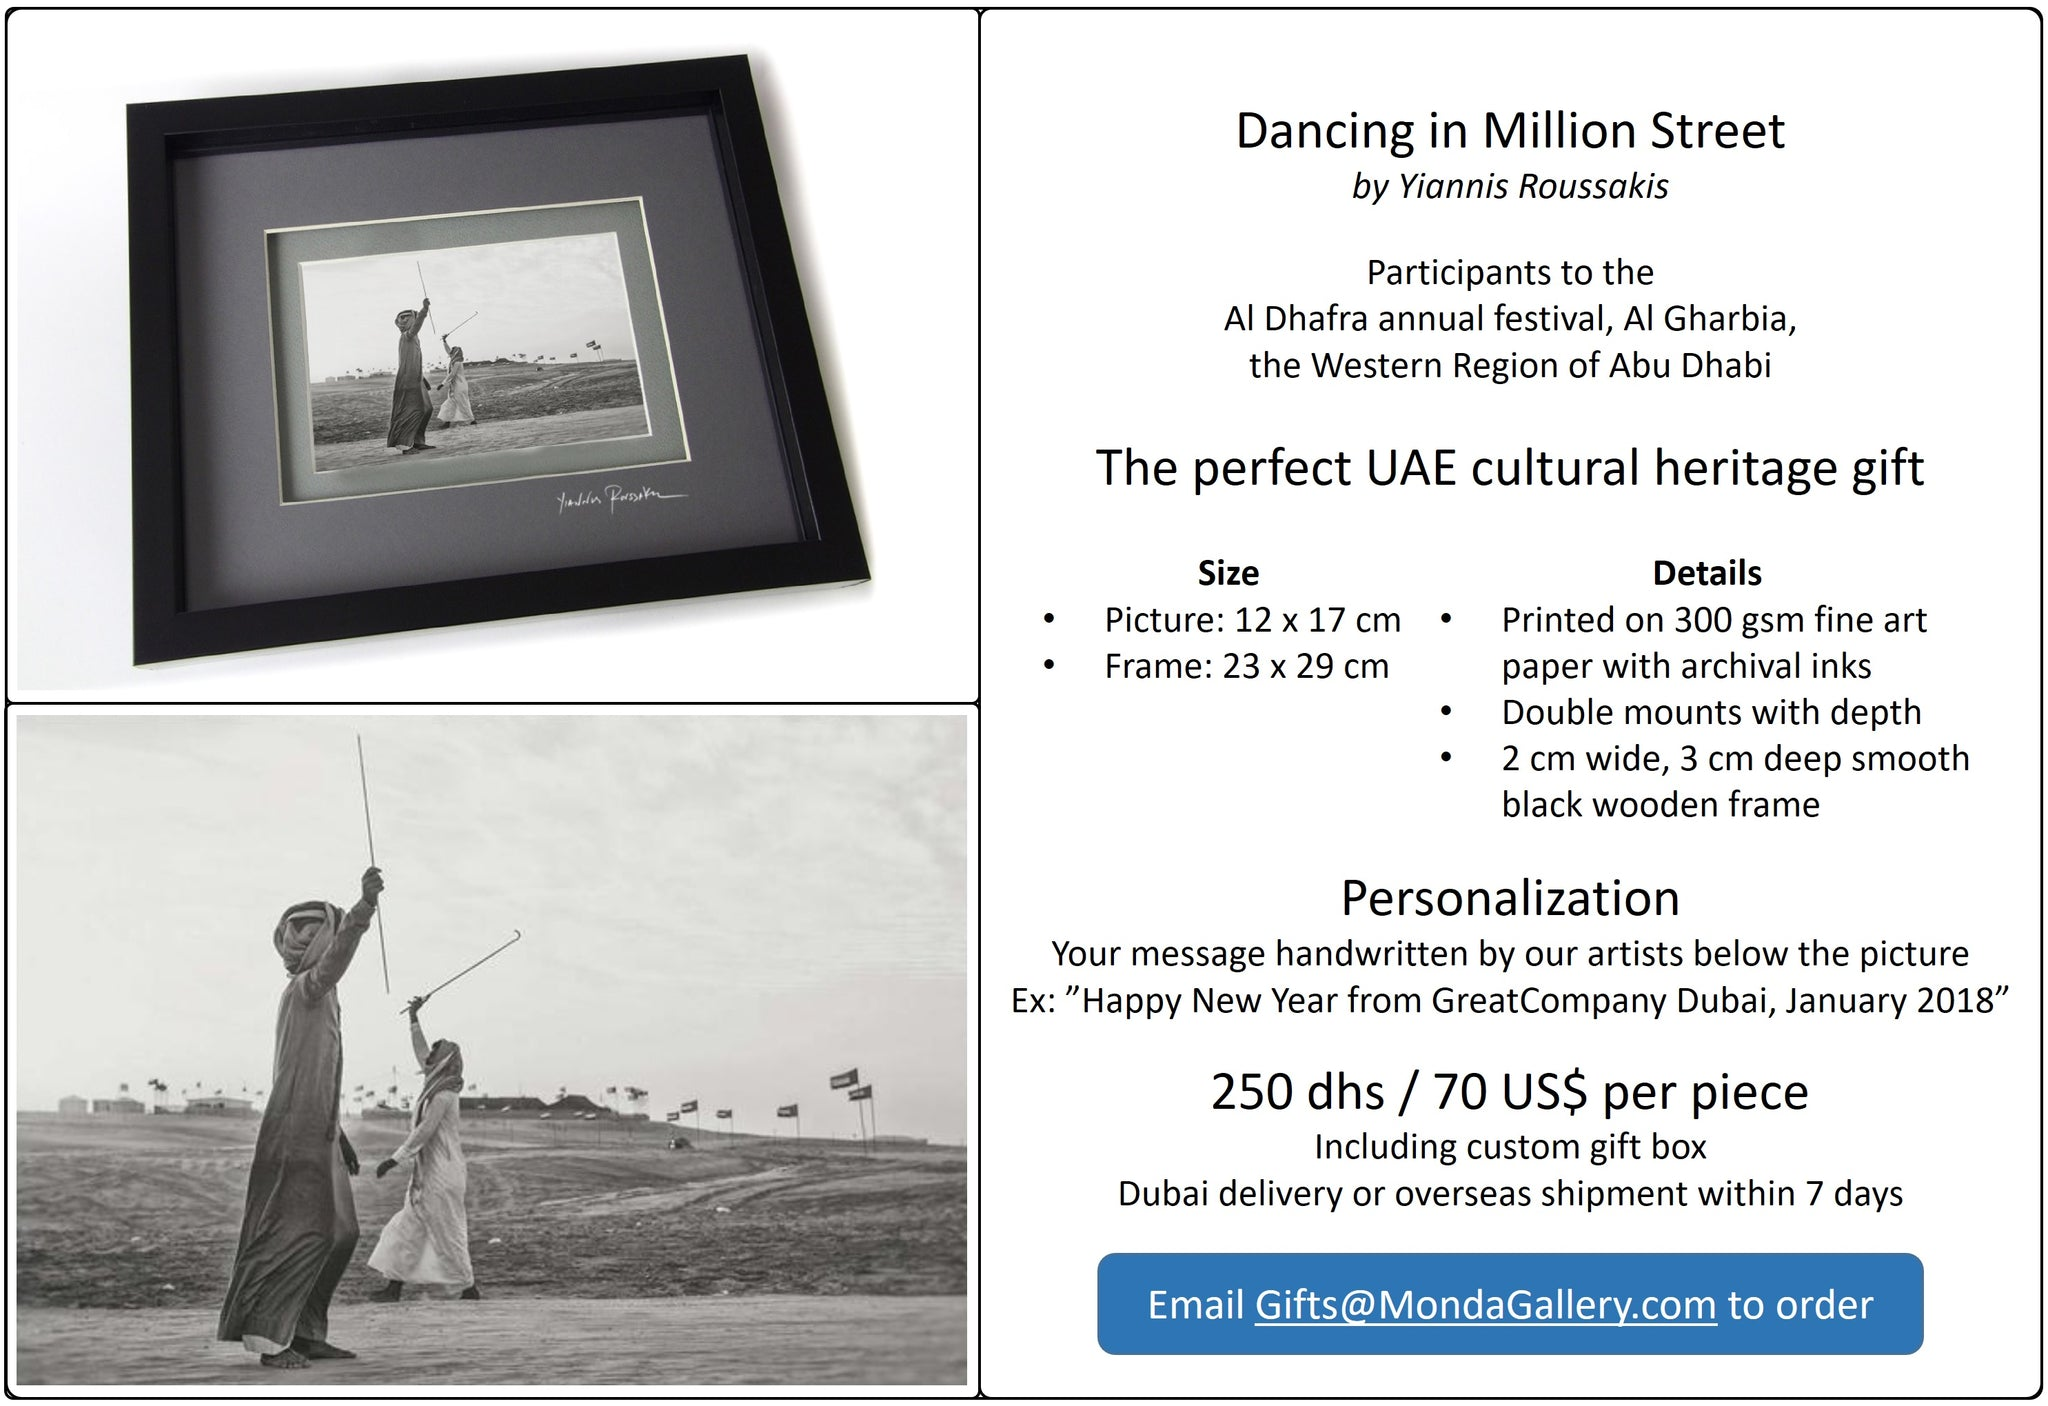 Dancing in Million Street - Framed Art Corporate Gift